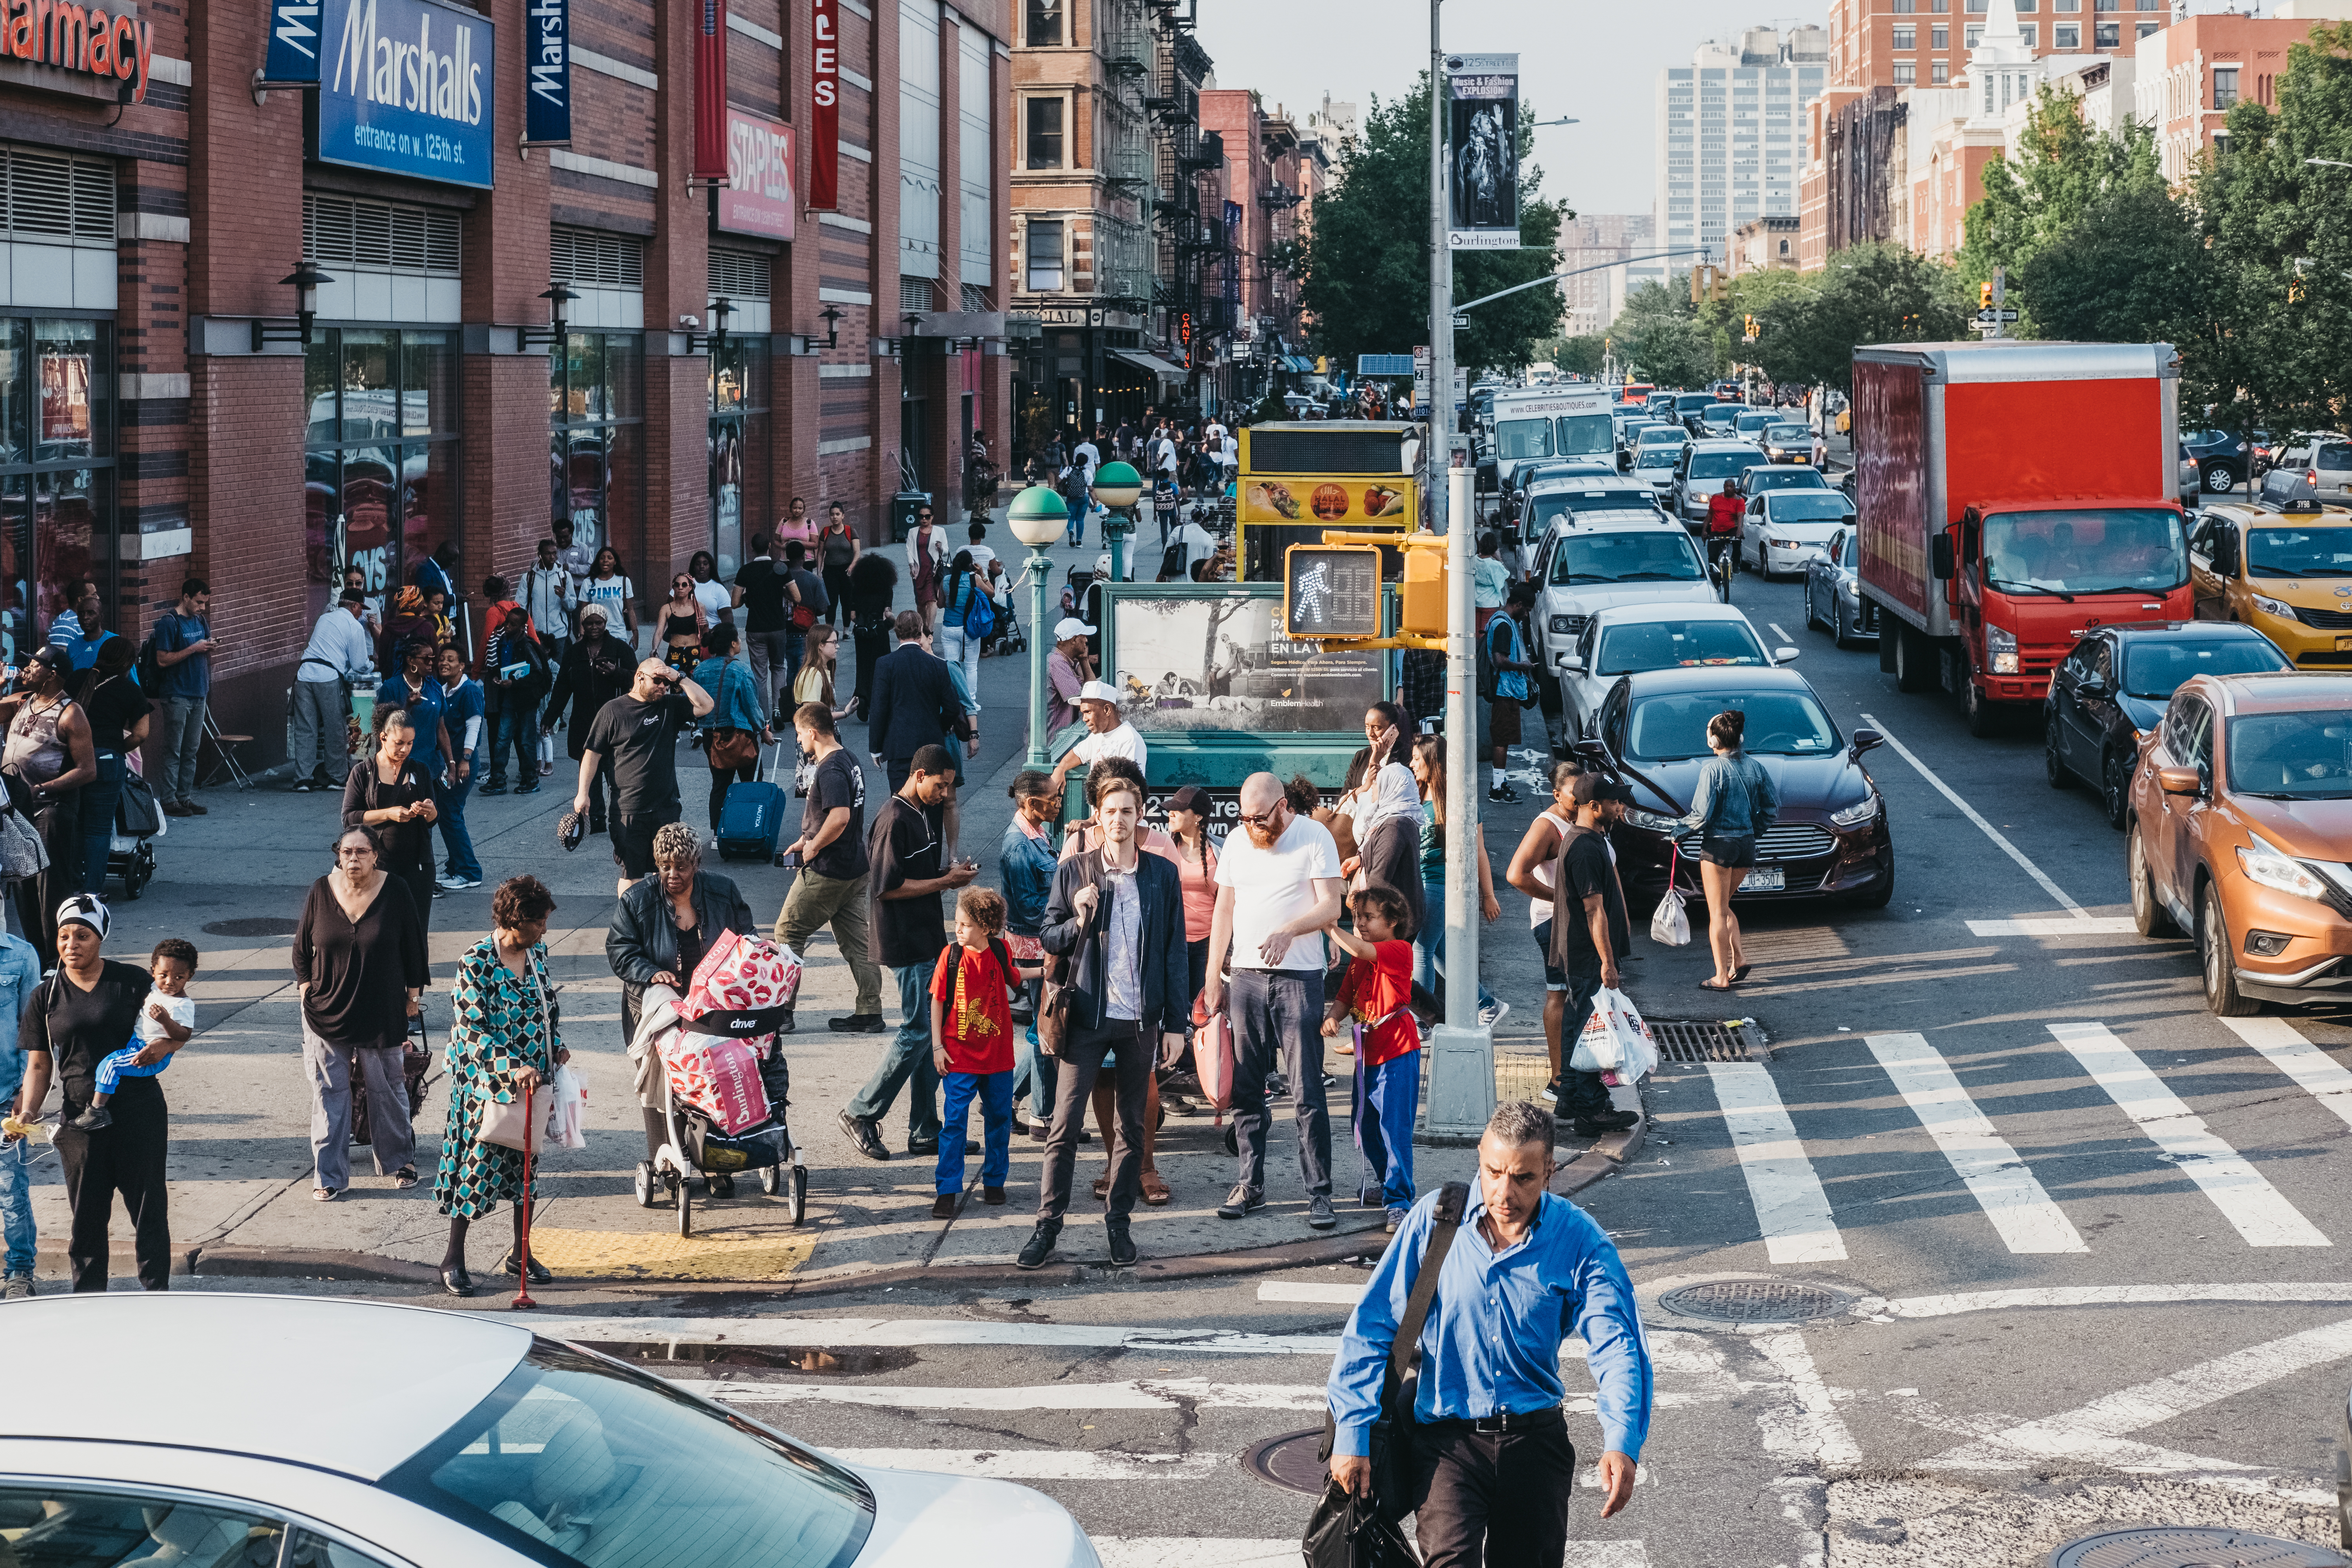 Air Pollution Can Ruin The Health Benefits Of Walkable